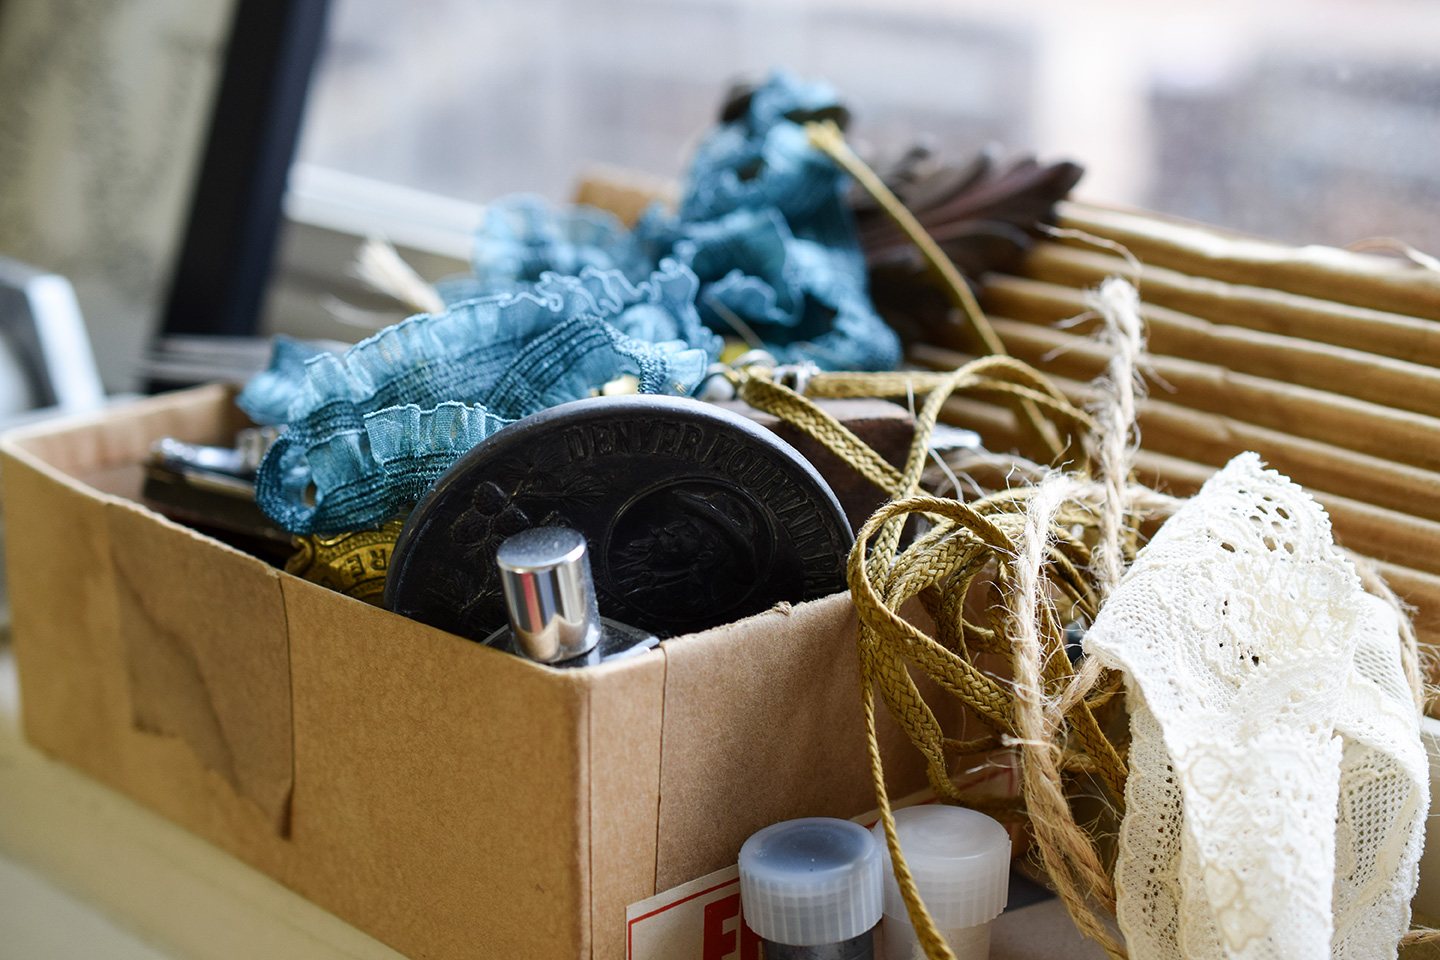 6 Art + Calligraphy Product Photography Tips from a DIY Photographer | The Postman's Knock